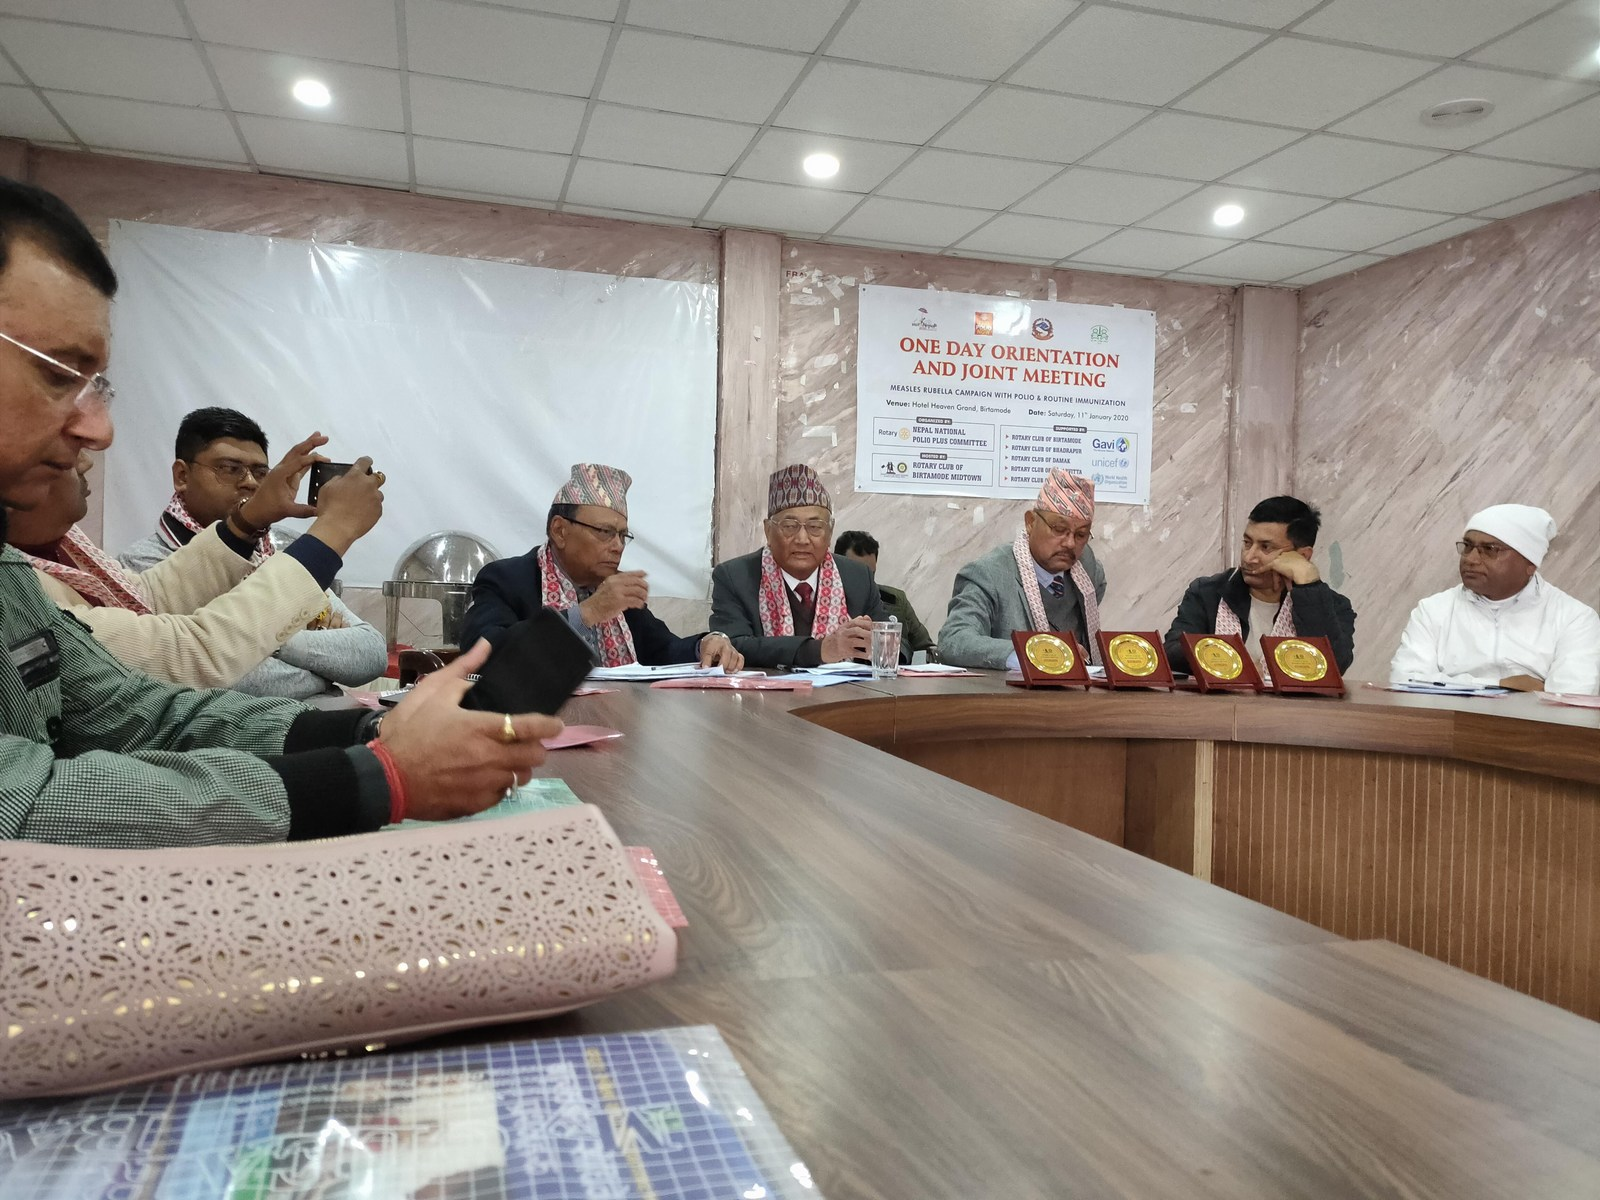 One Day Orientation Joint Meeting About Immunization Rotary Club Of Kakarvitta 1